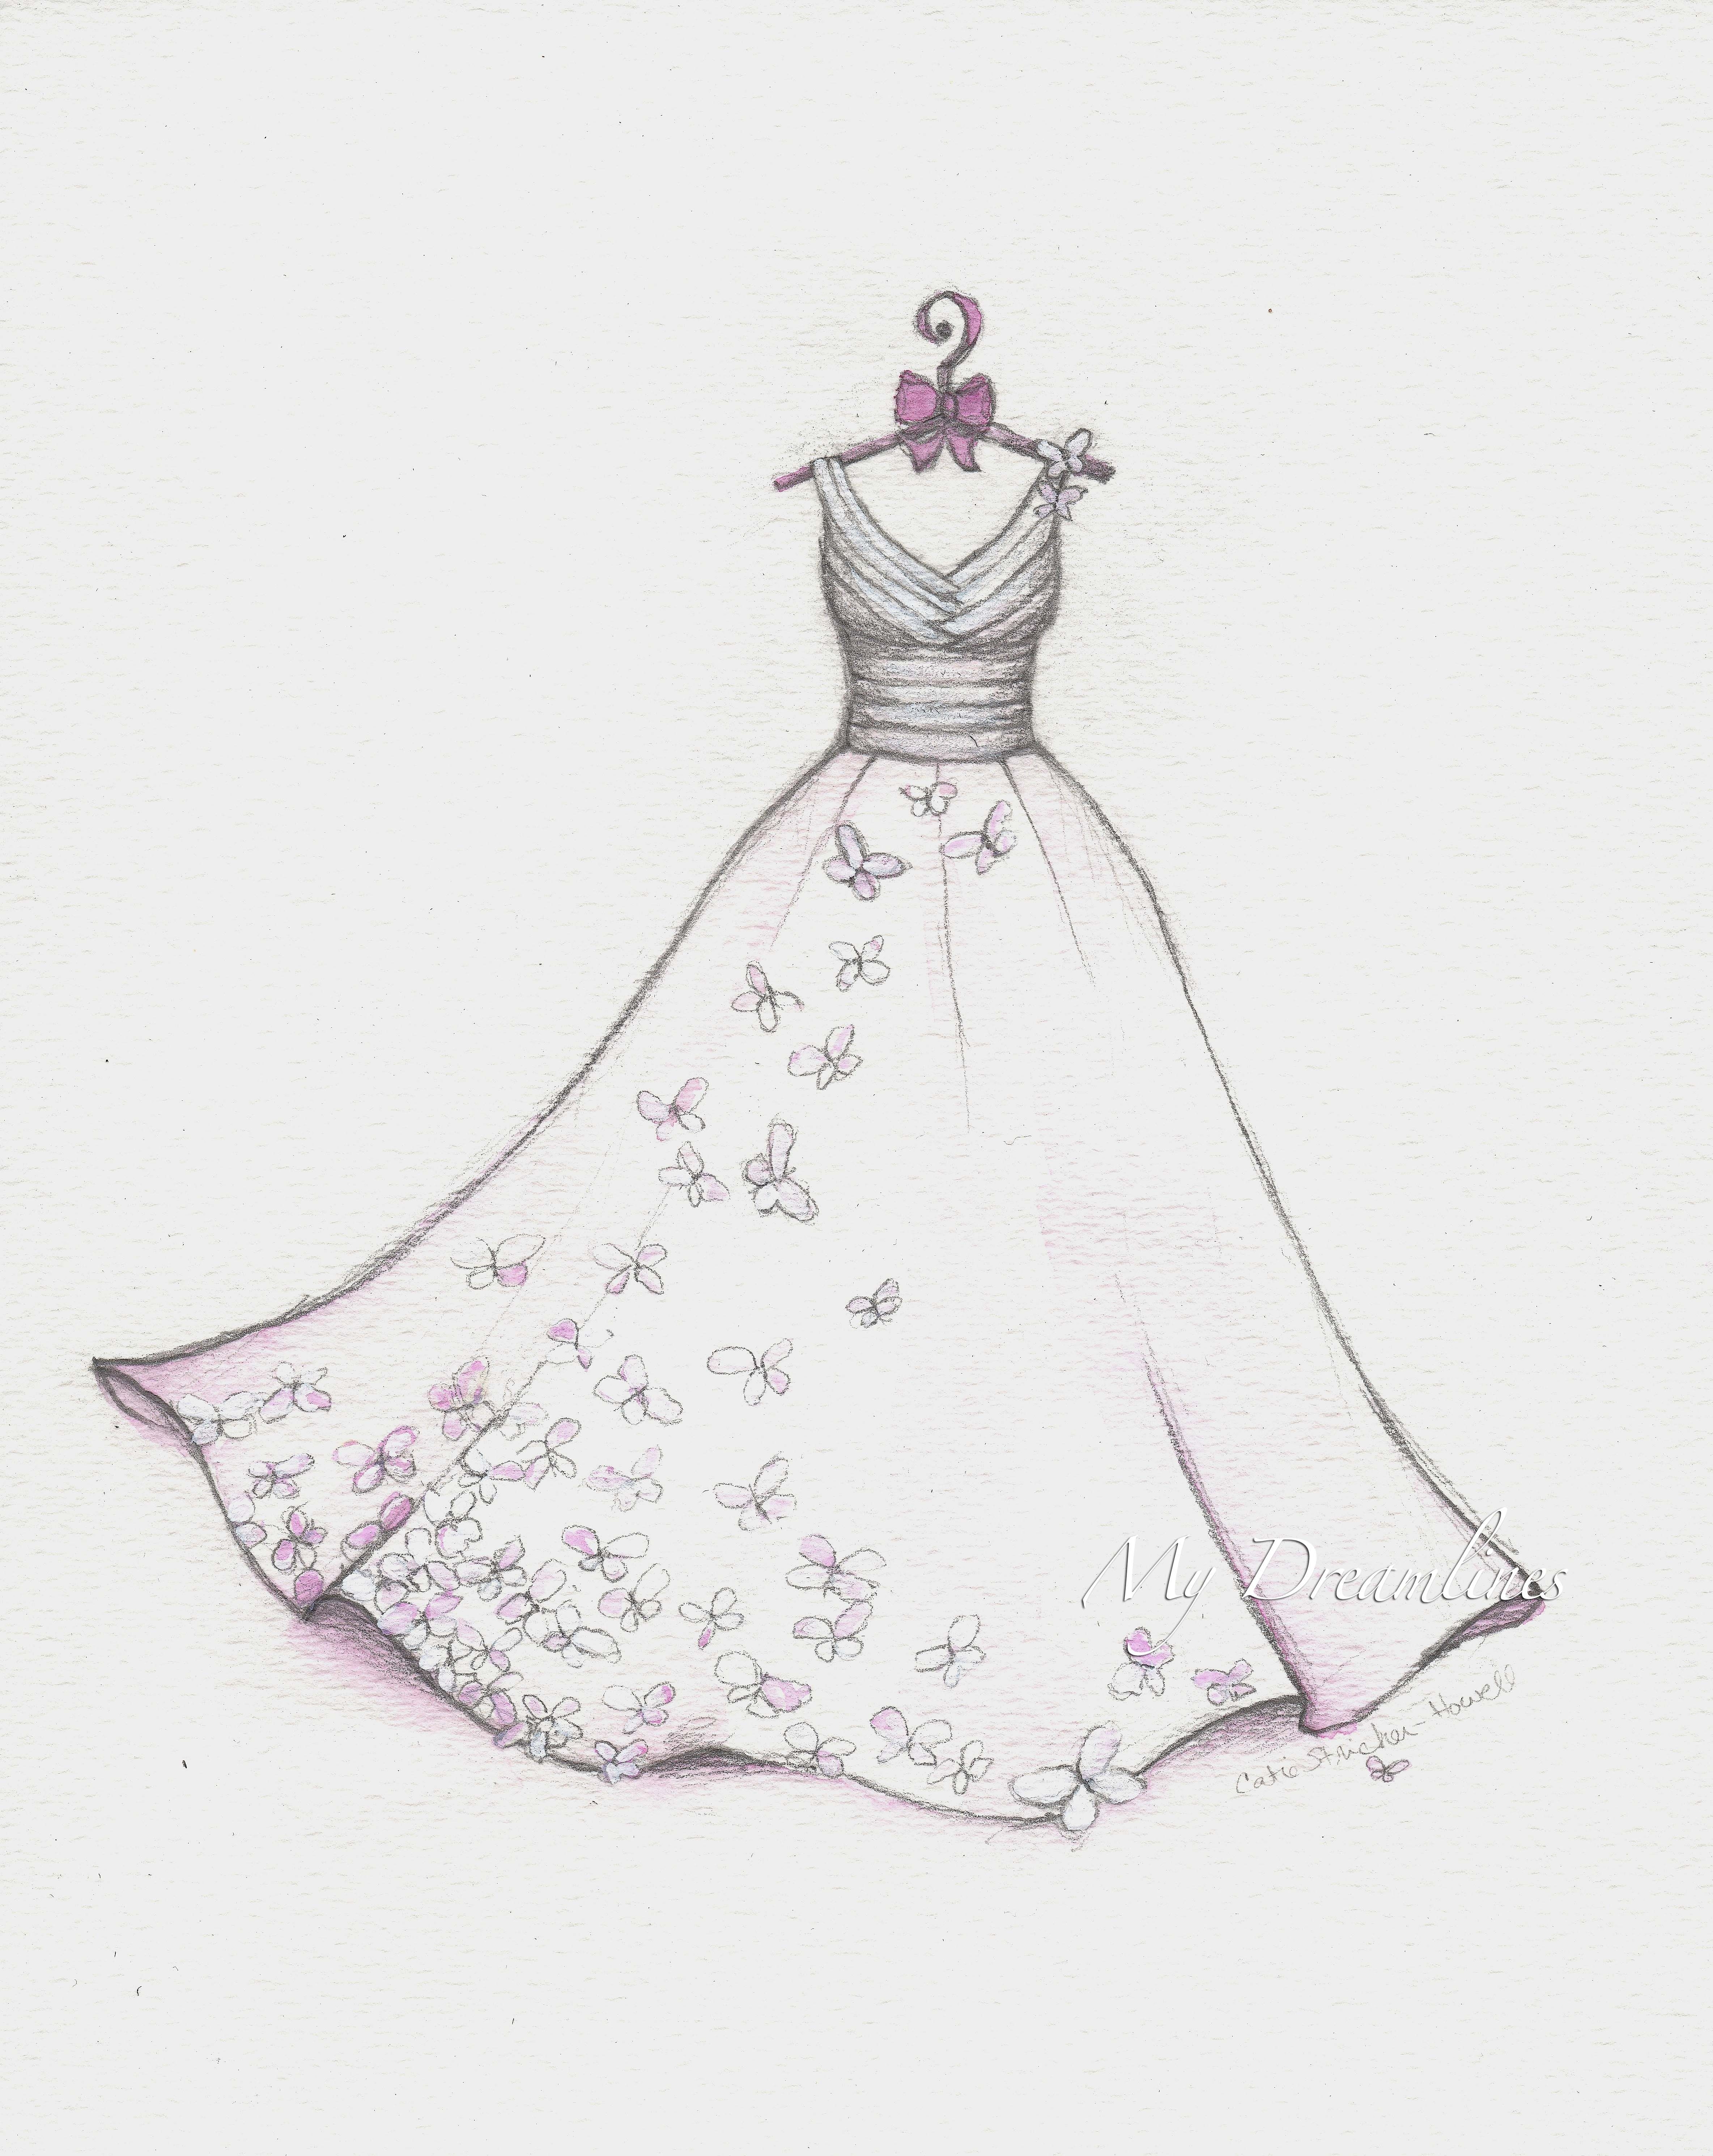 Wedding dress sketch for st anniversary a gift from him to her on